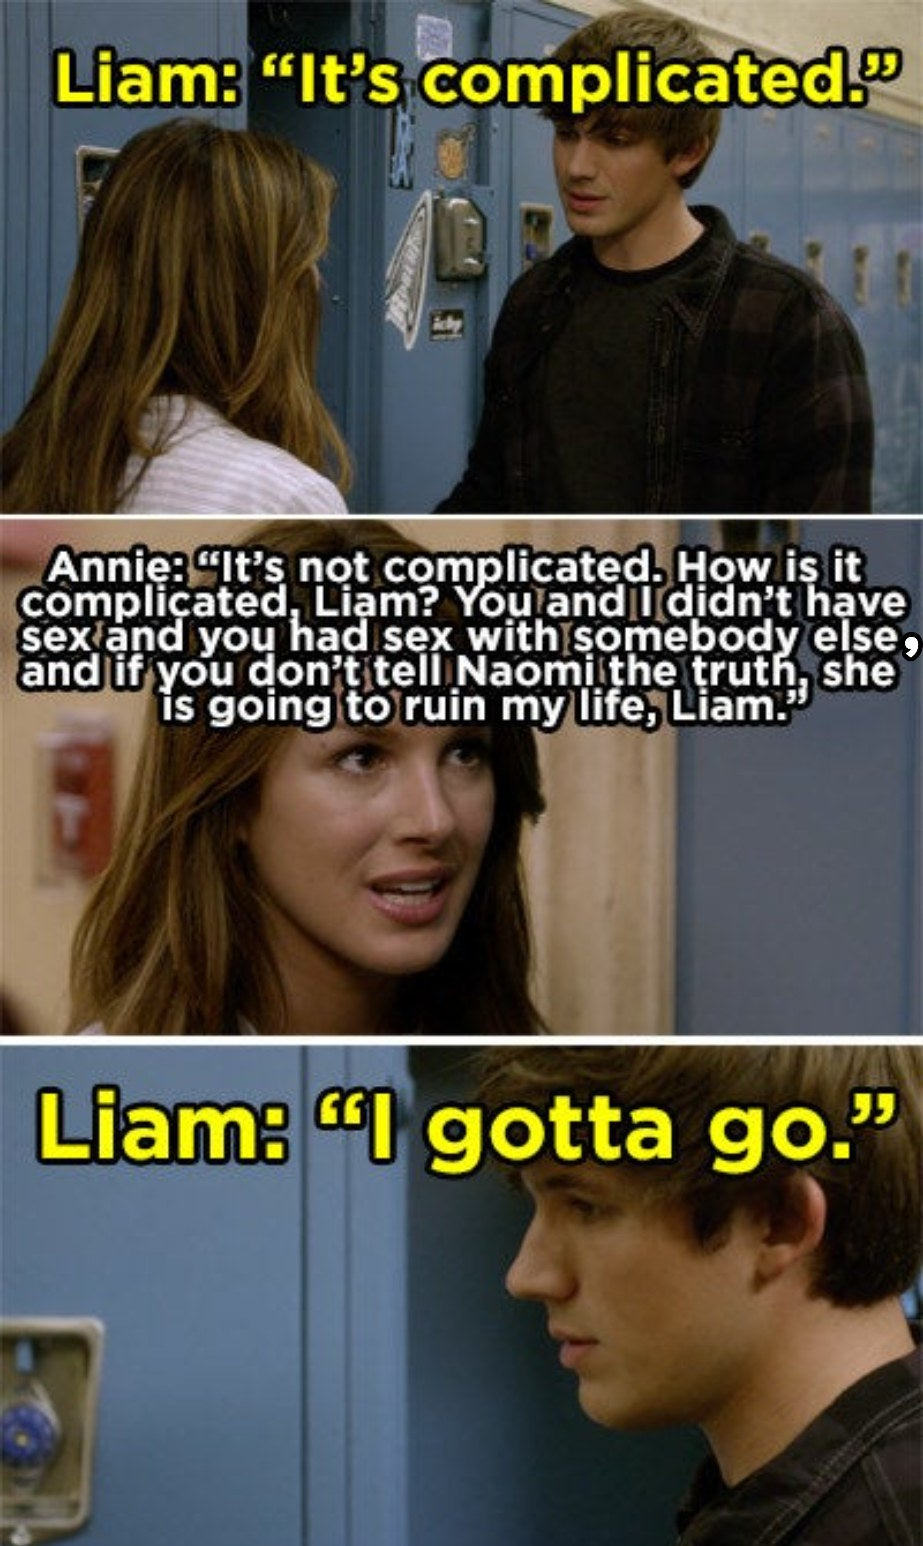 Annie begging Liam to tell Naomi the truth